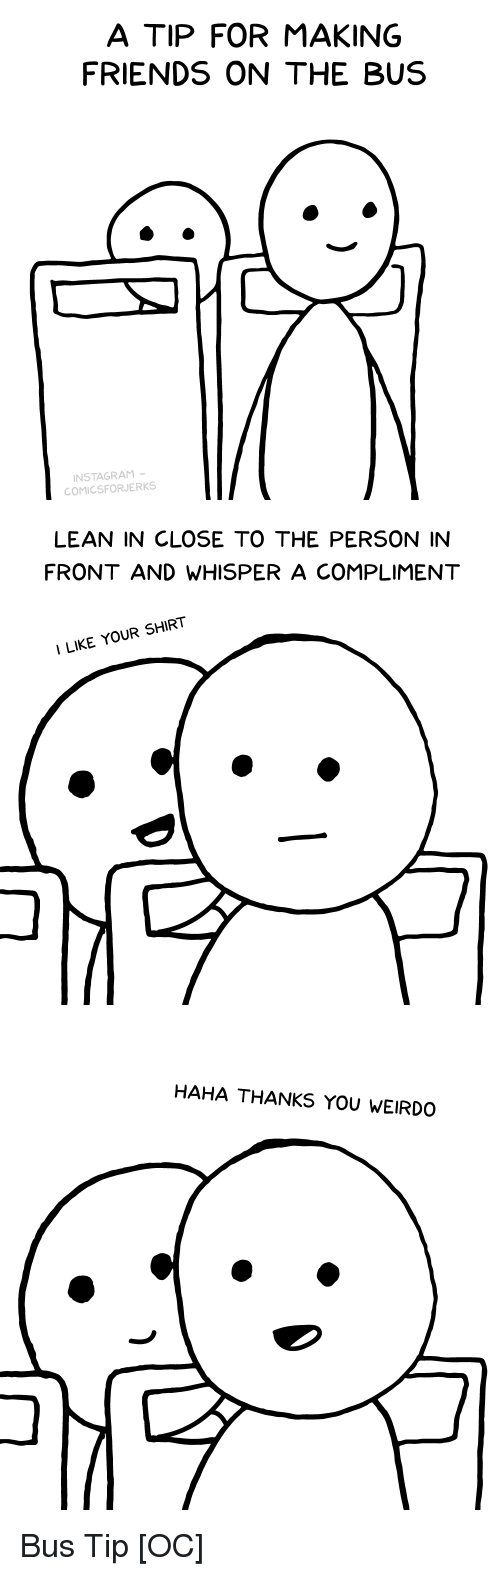 Friends, Lean, and Comics: A TIP FOR MAKING  FRIENDS ON THE BUS  NSTAGRAM  COMICSFORJERKS   LEAN IN CLOSE TO THE PERSON IN  FRONT AND WHISPER A COMPLIMENT  ILIKE YOUR SHIRT   HAHA THANKS YOU WEIRDO Bus Tip [OC]